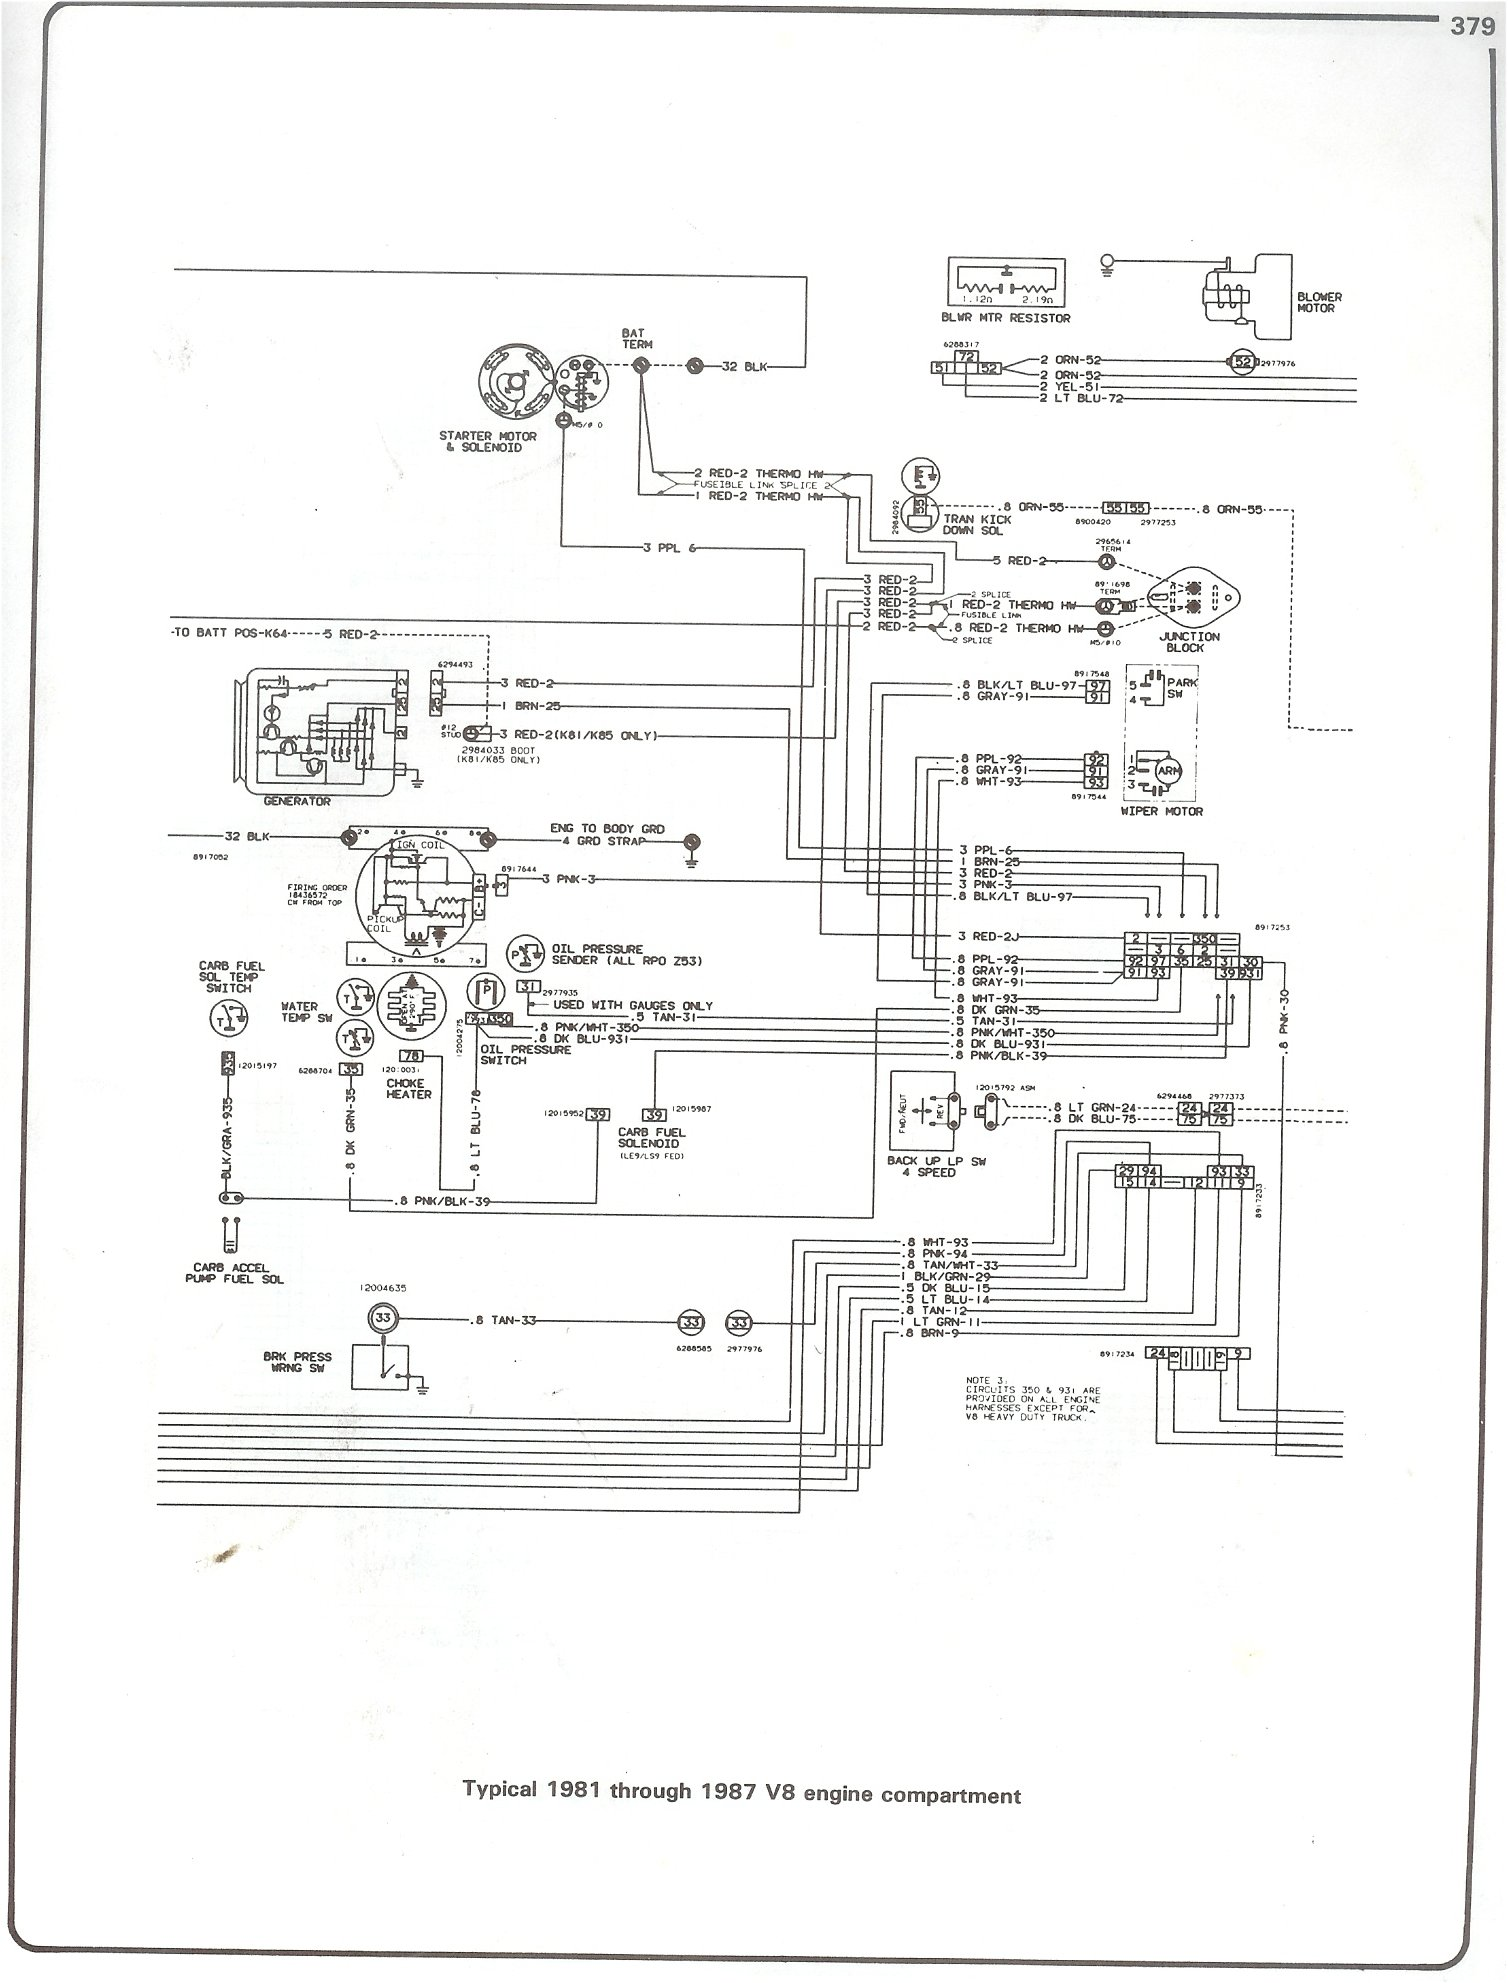 1974 Chevy C10 Wiring Schematics Opinions About Diagram 80 Powering My 84 The 1947 Present Chevrolet Gmc Truck Message Board Network Dash